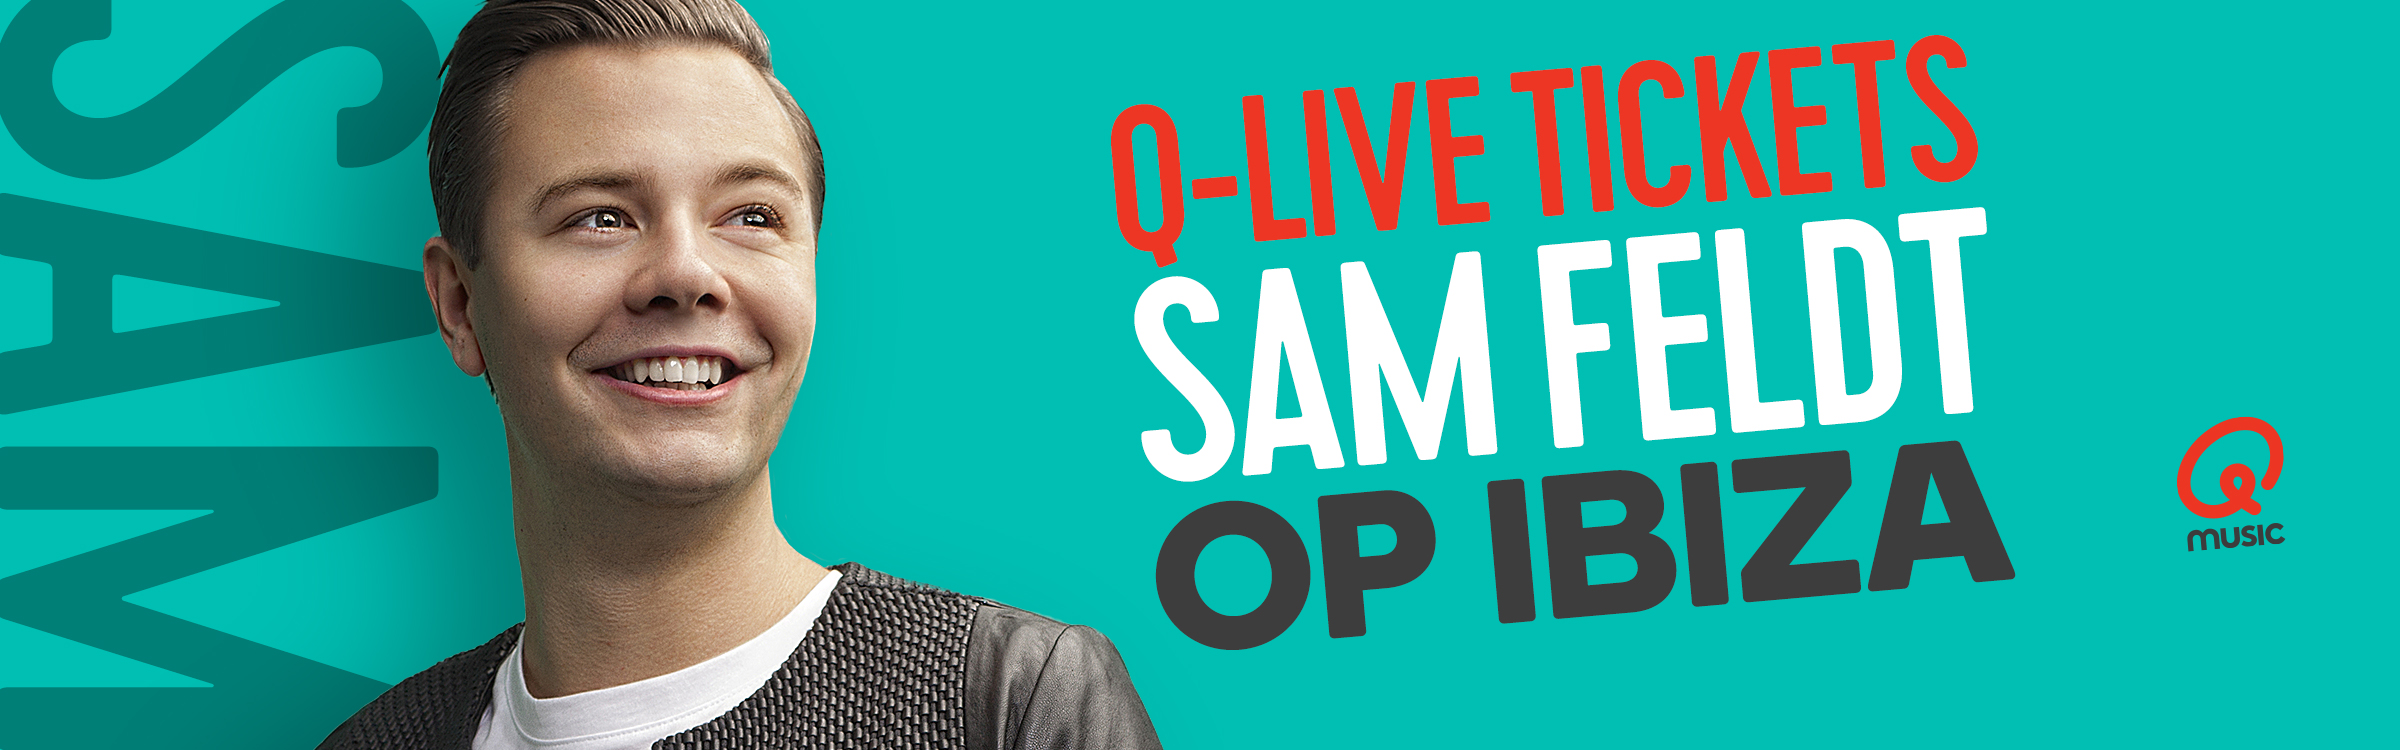 Qmusic actionheader samfeldt v2